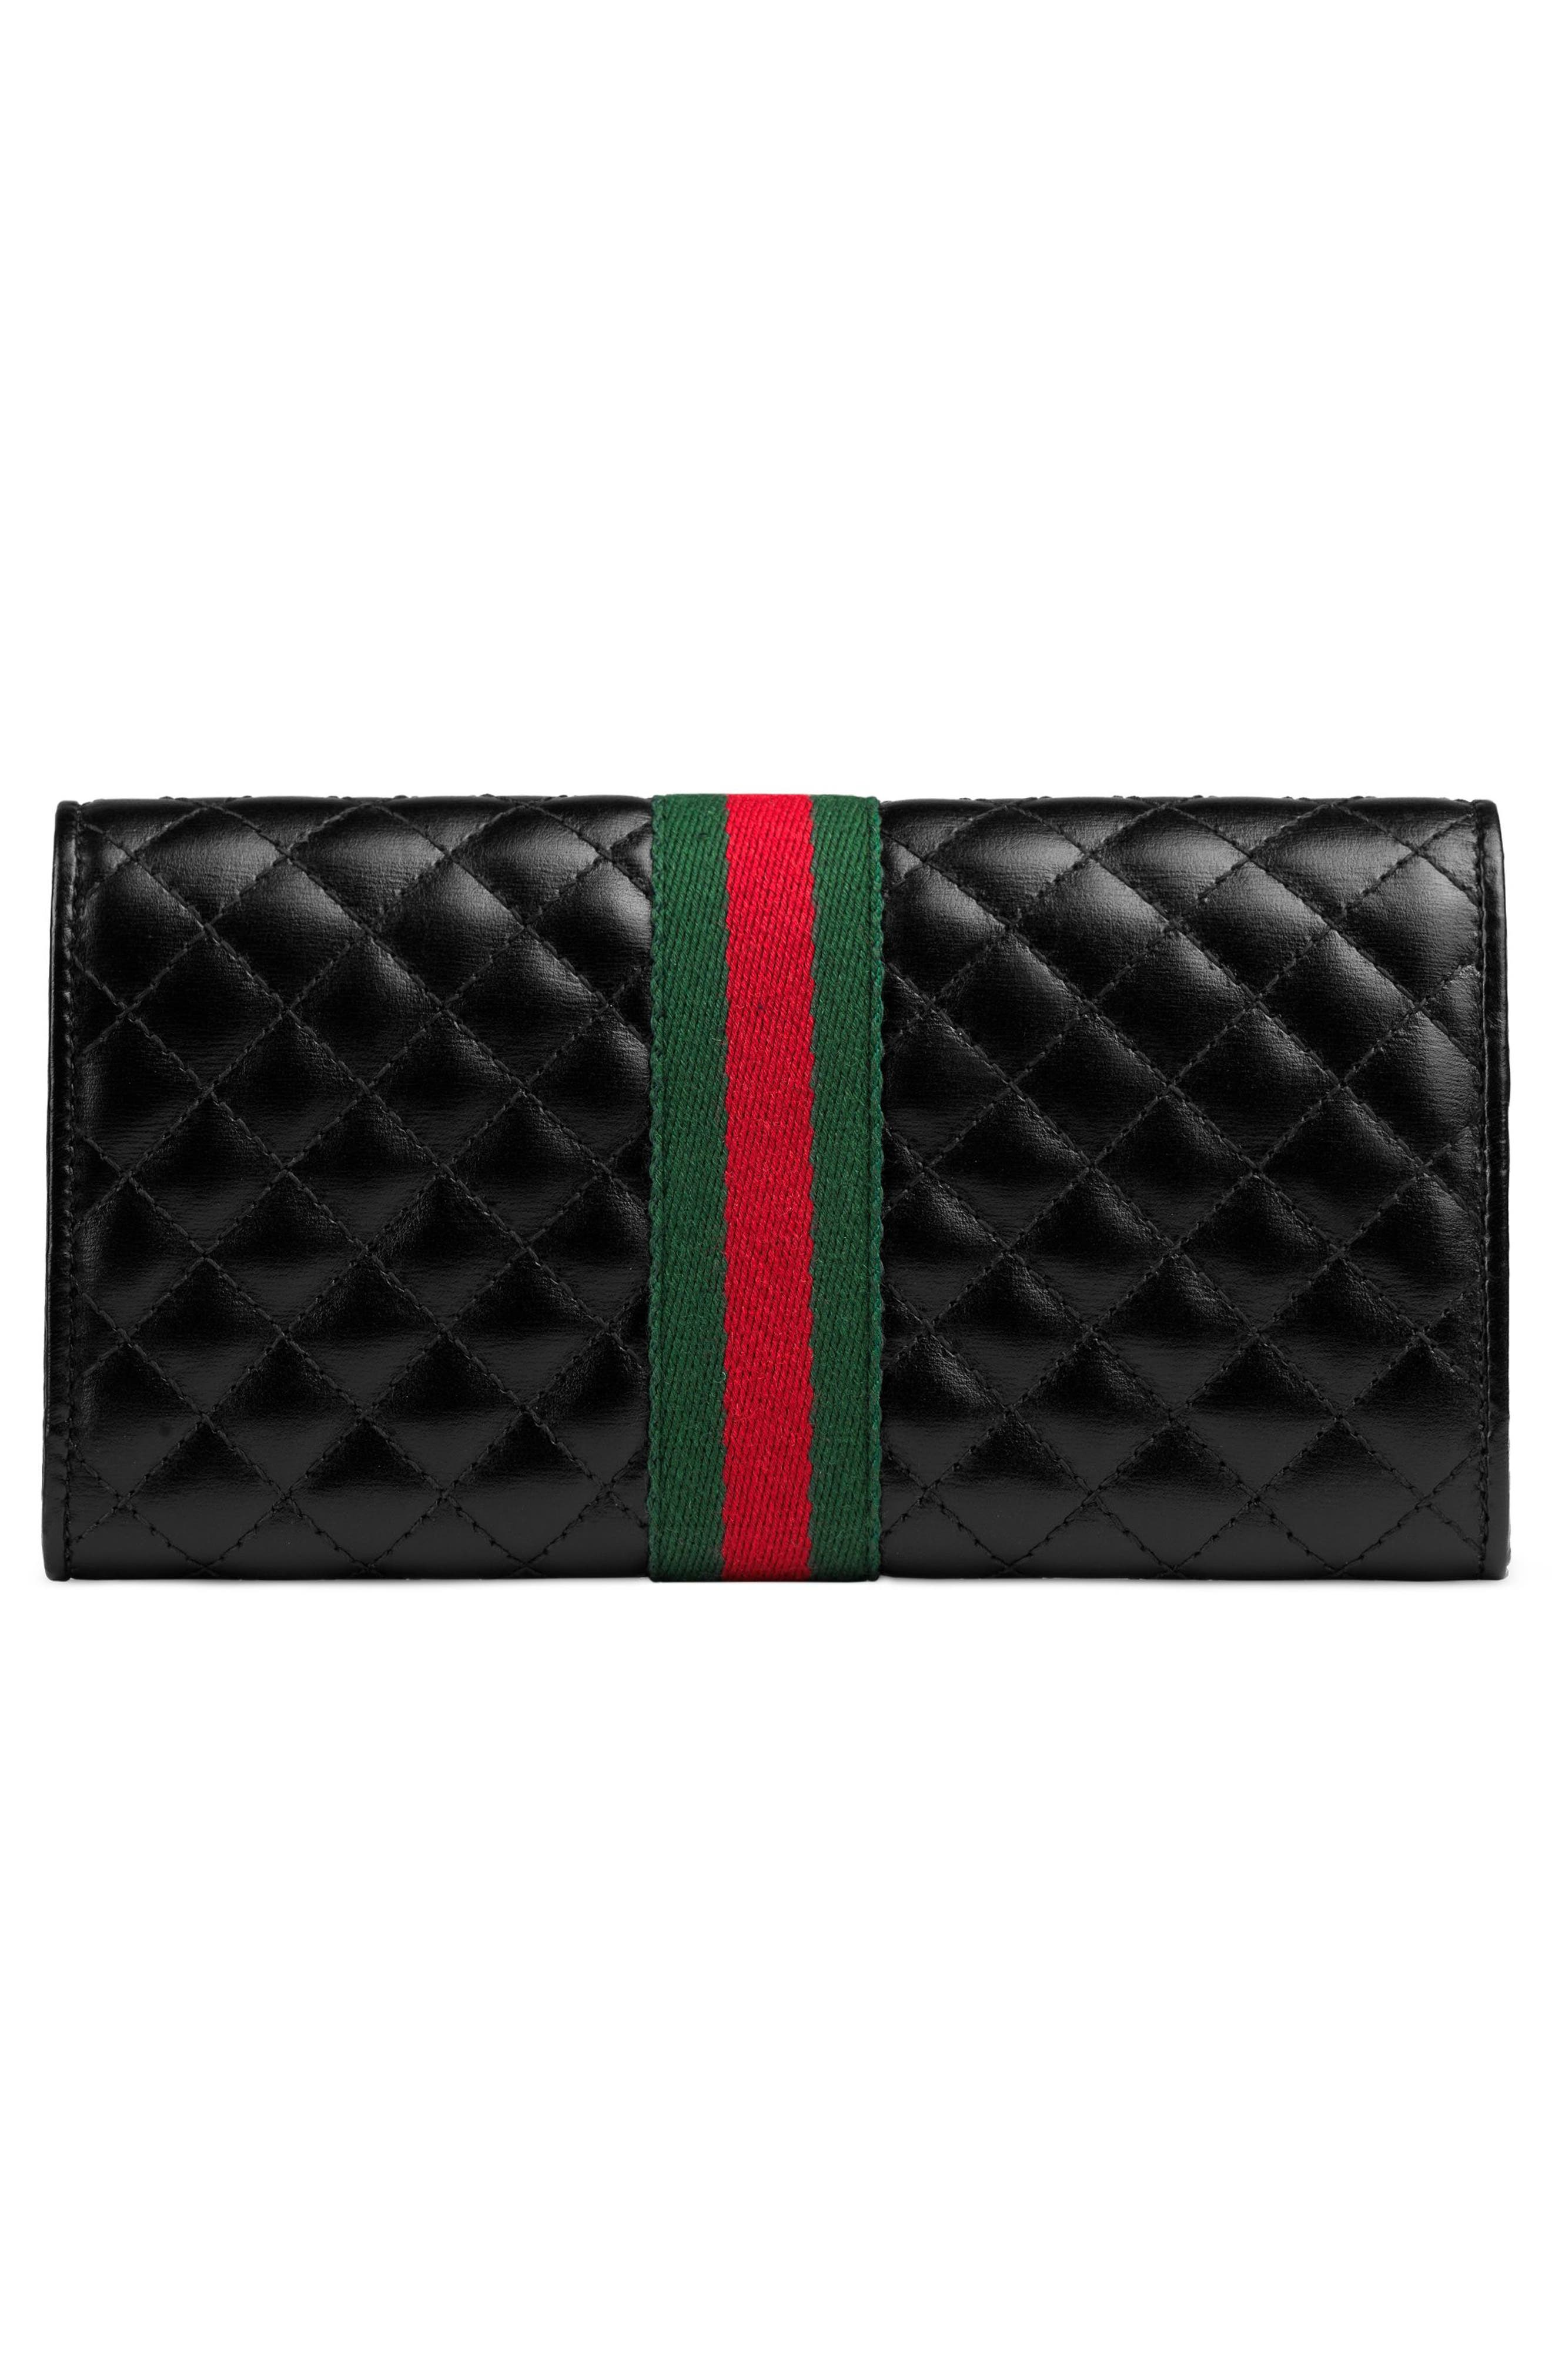 Quilted Leather Continental Wallet,                             Alternate thumbnail 3, color,                             NERO/ VERT/ RED